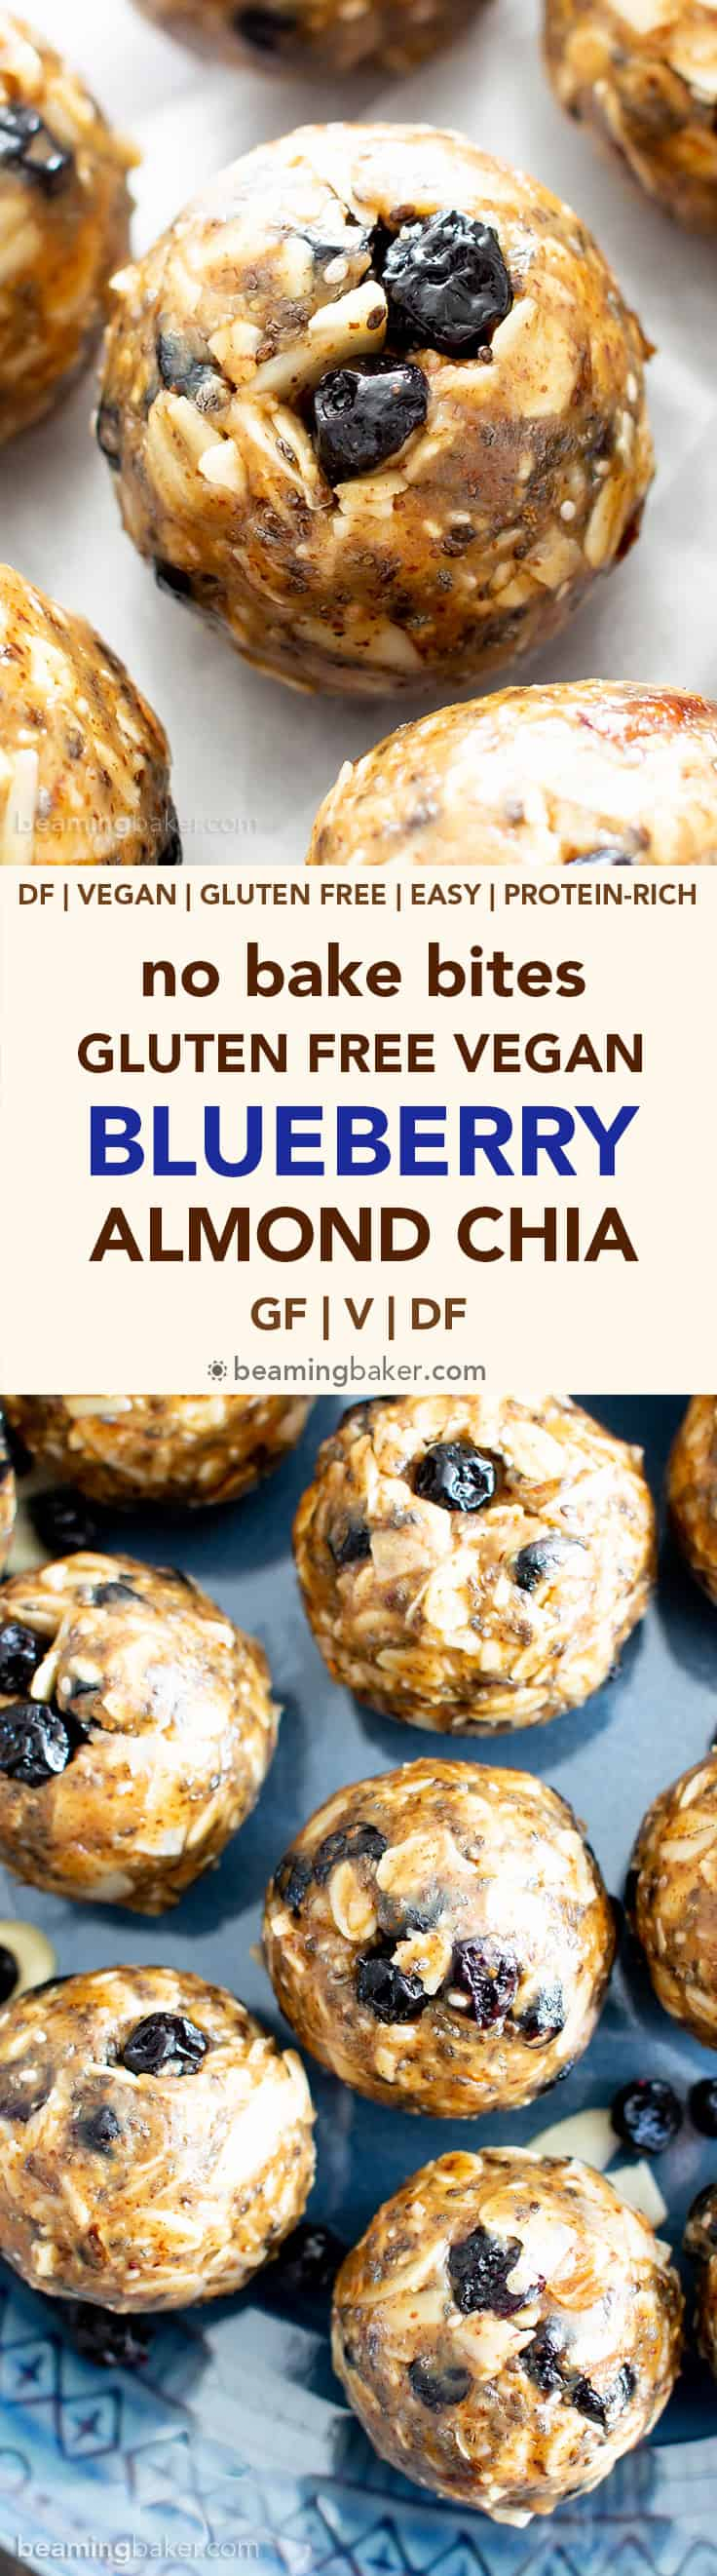 No Bake Blueberry Almond Chia Energy Bites (V, GF): a quick 'n easy snack recipe for protein-rich no bake bites made with your favorite healthy ingredients! #Vegan #GlutenFree #ProteinRich #HealthySnacks #NoBake #Blueberries | Recipe at BeamingBaker.com